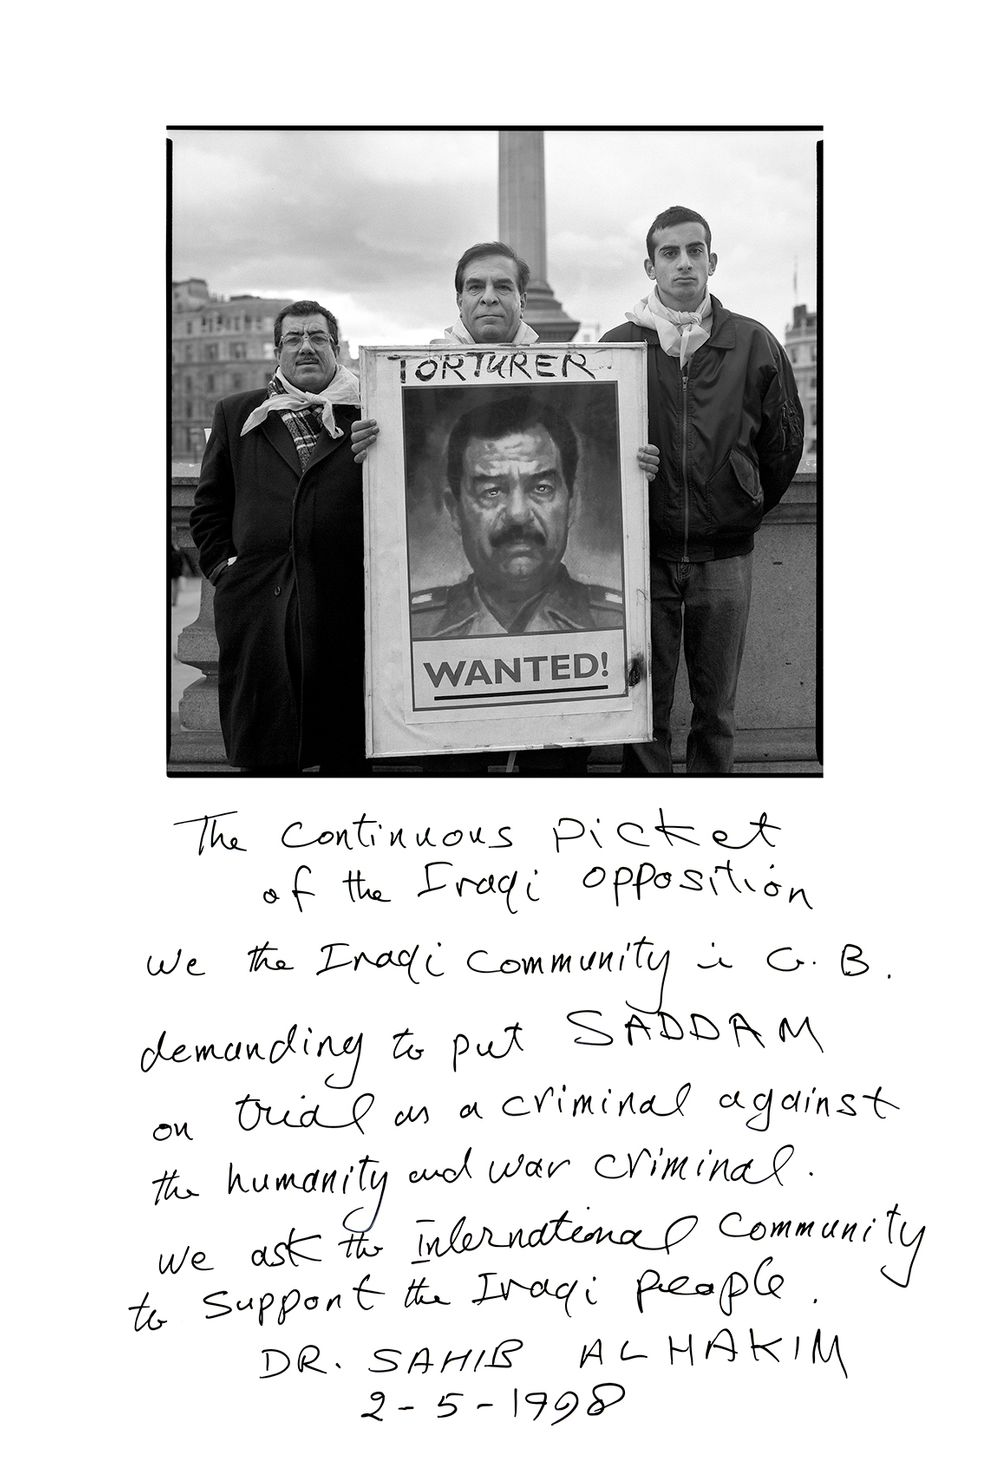 Saddam-Picket-copy.jpg